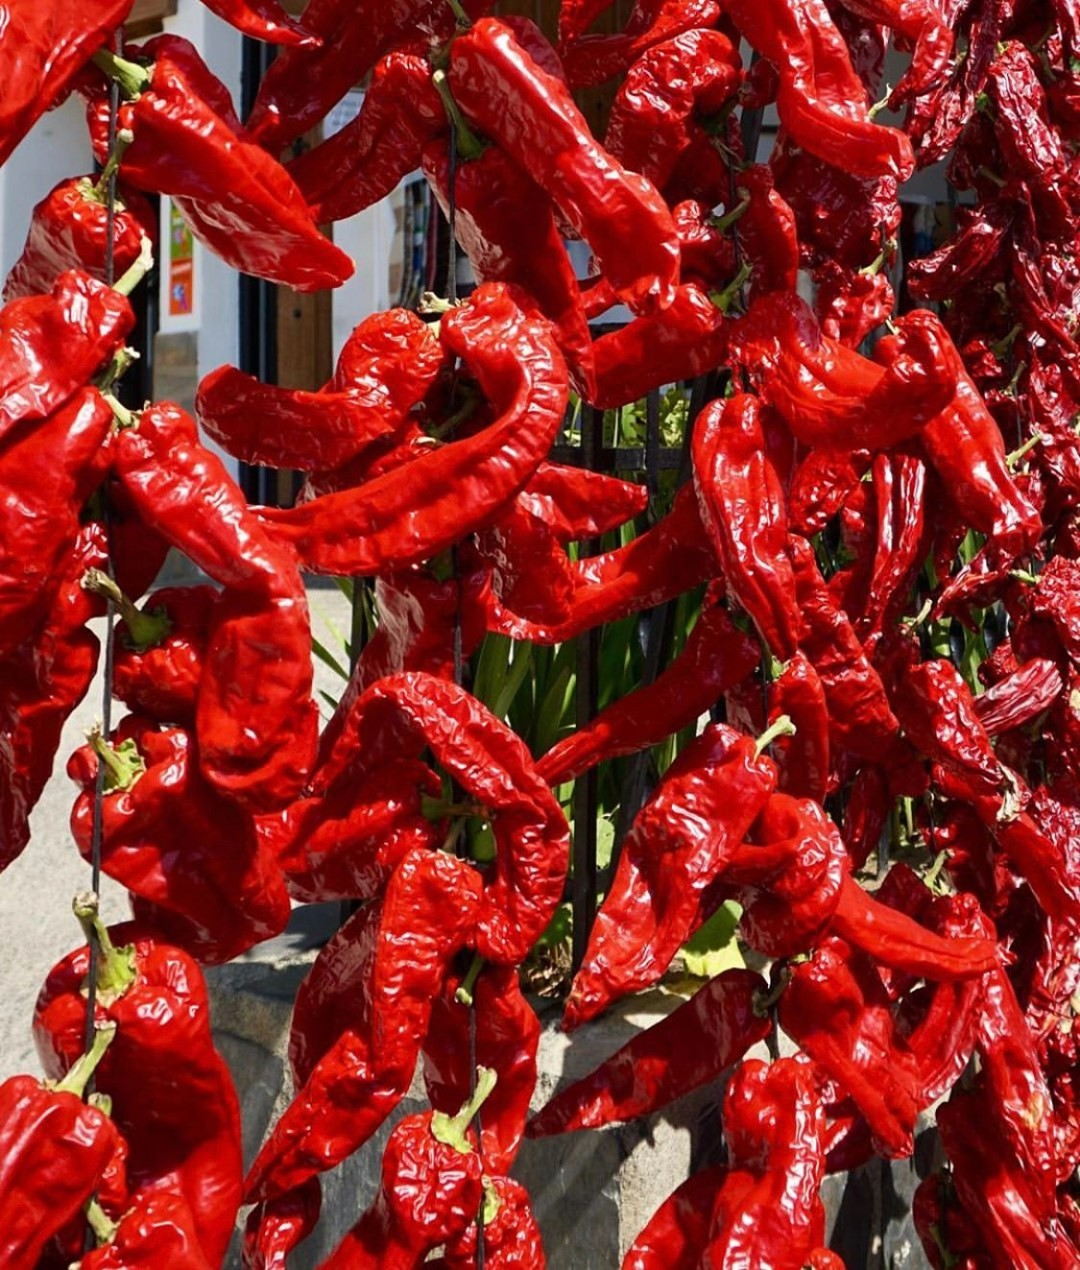 Hot peppers grown in Sierra Nevada, Andulusia, the origin of our pure natural mineral water